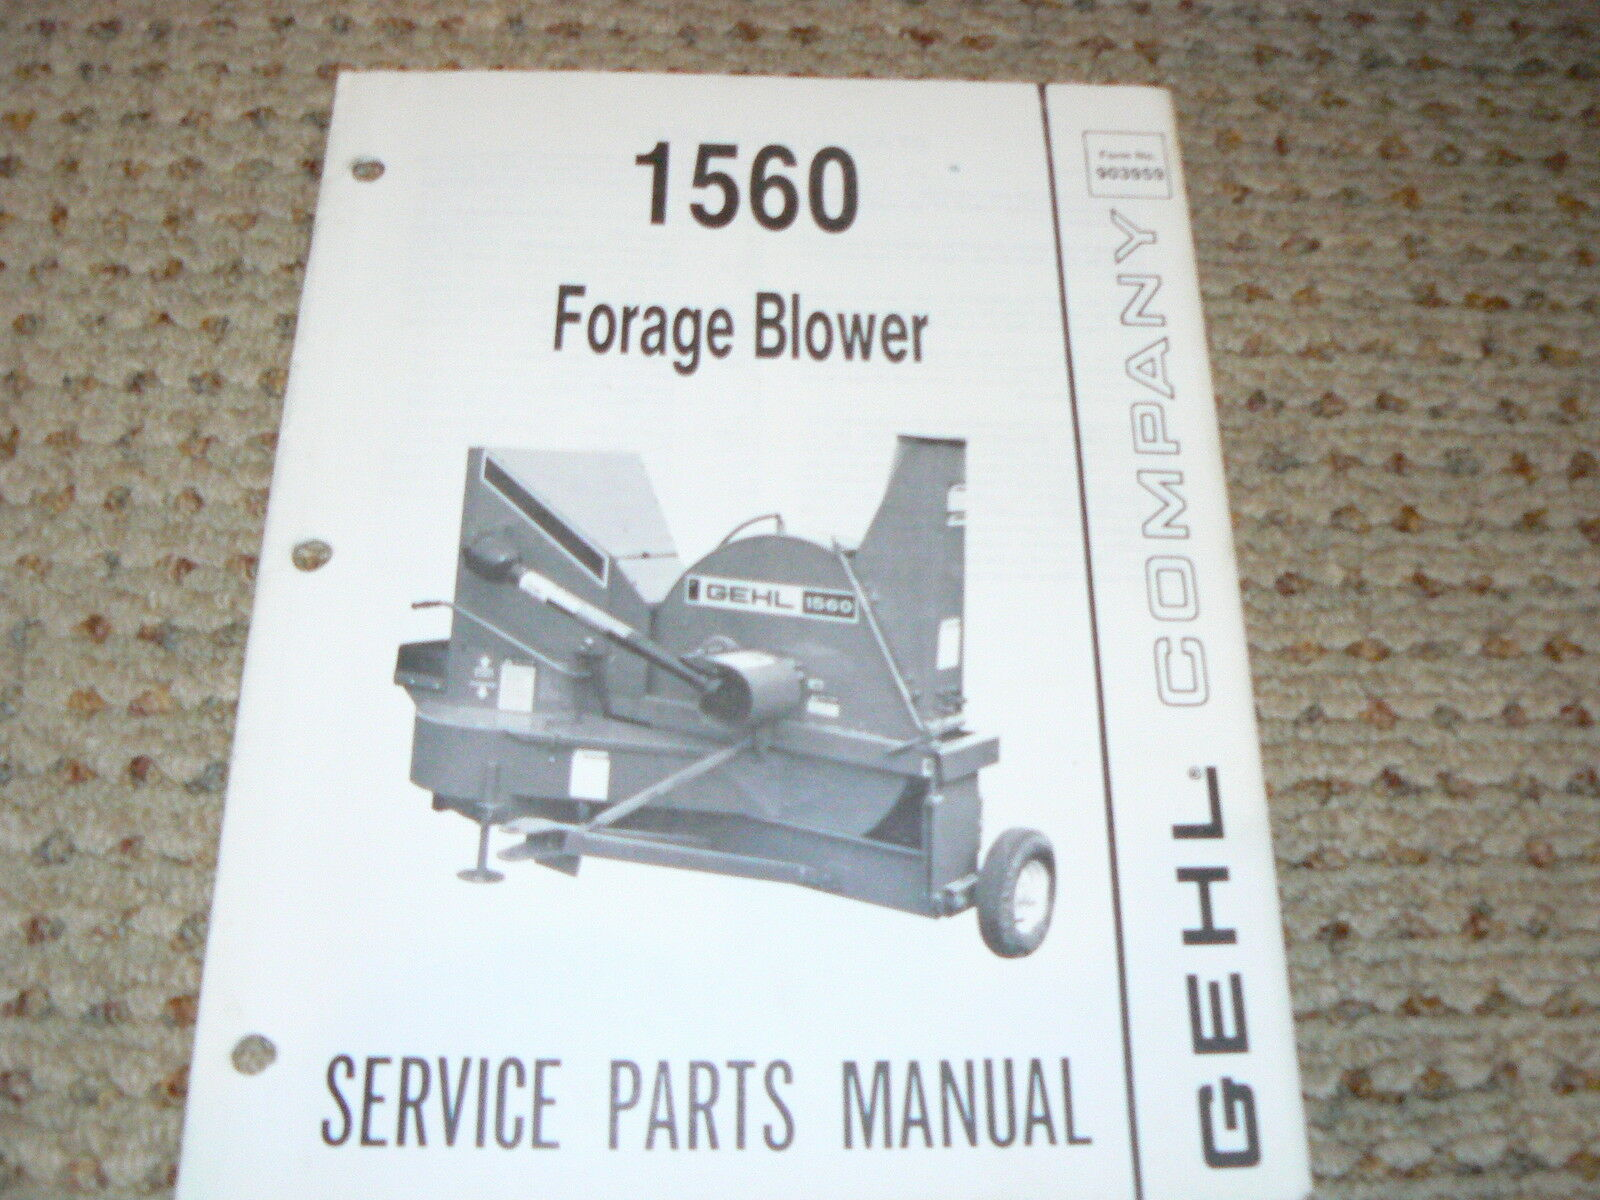 Gehl 1560 Forage Blower Dealer's Parts Manual 1 of 1Only 1 available ...